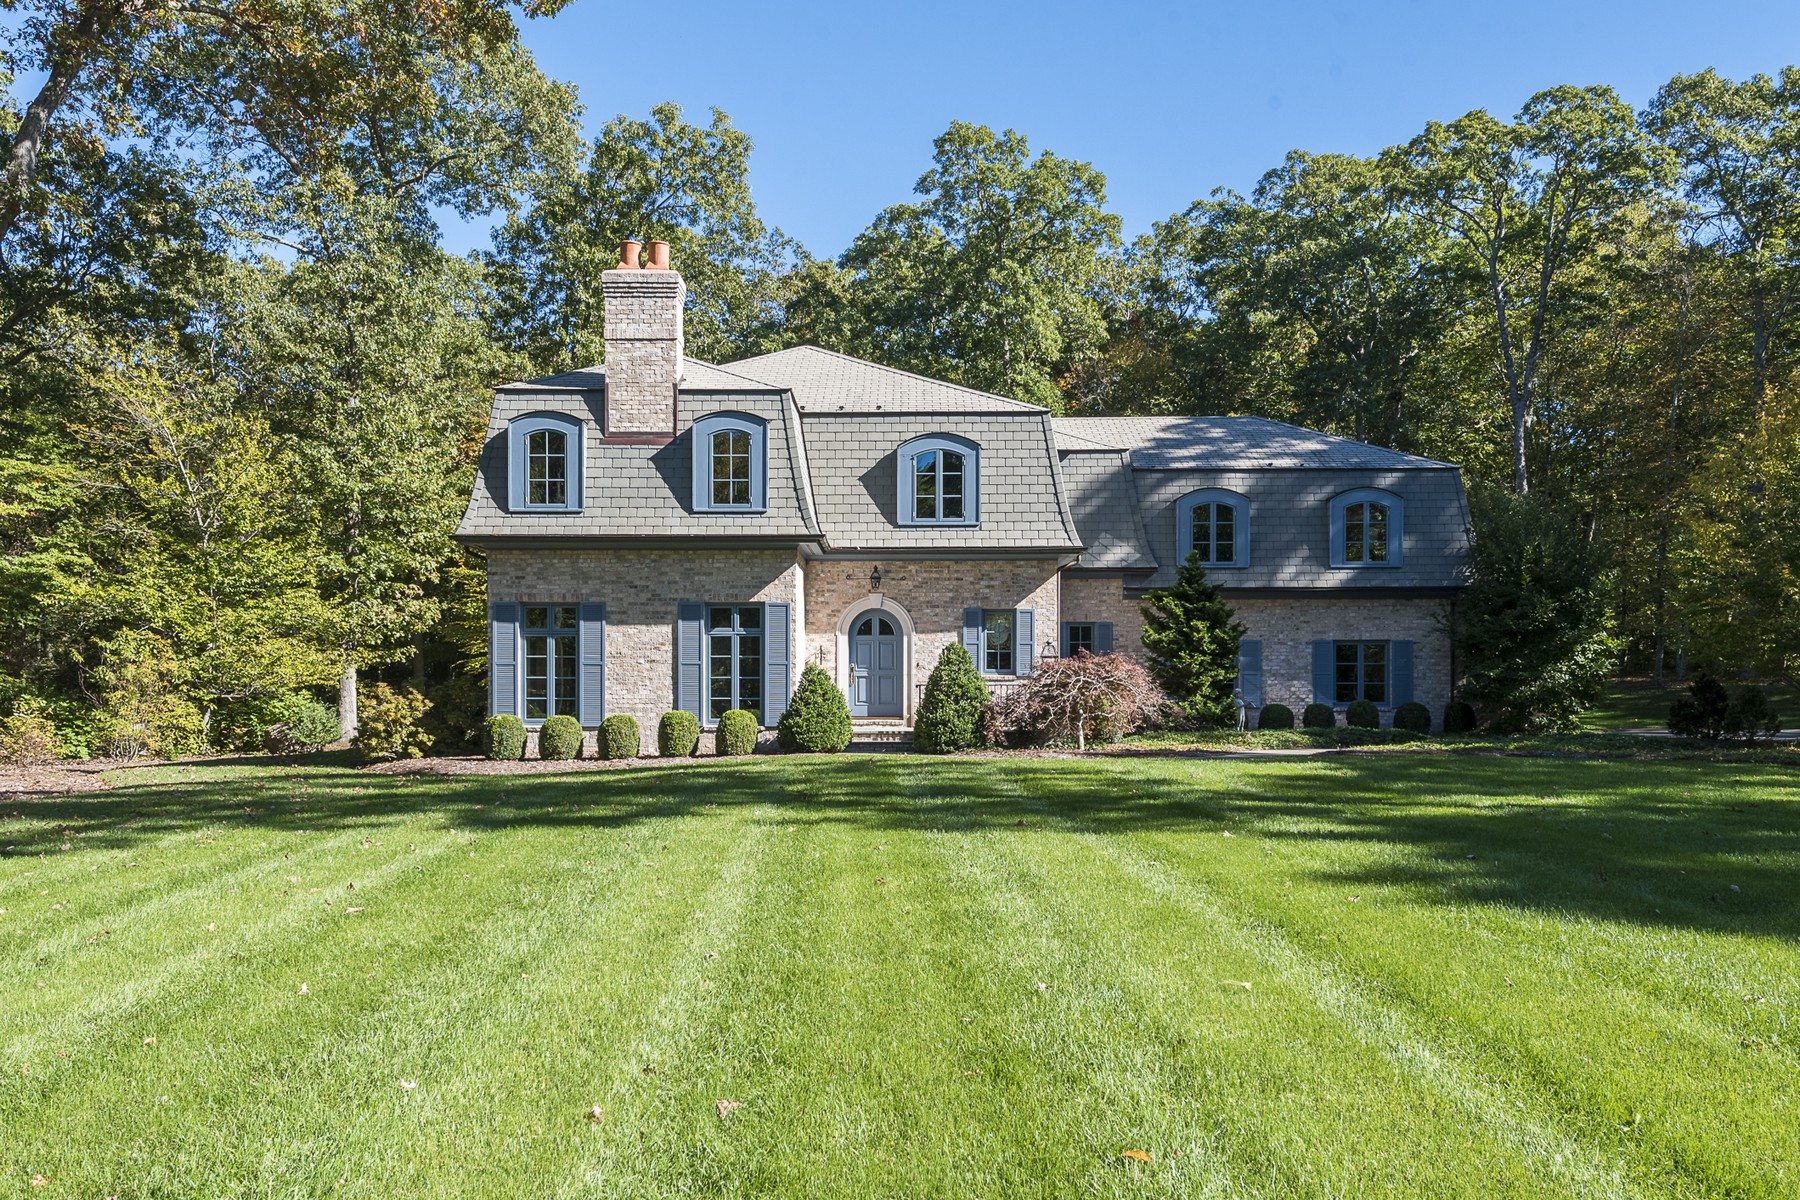 Casa Unifamiliar por un Venta en Brick & Slate French Tudor on Private Cul-de-Sac 36 Watrous Point Rd Old Saybrook, Connecticut, 06475 Estados Unidos